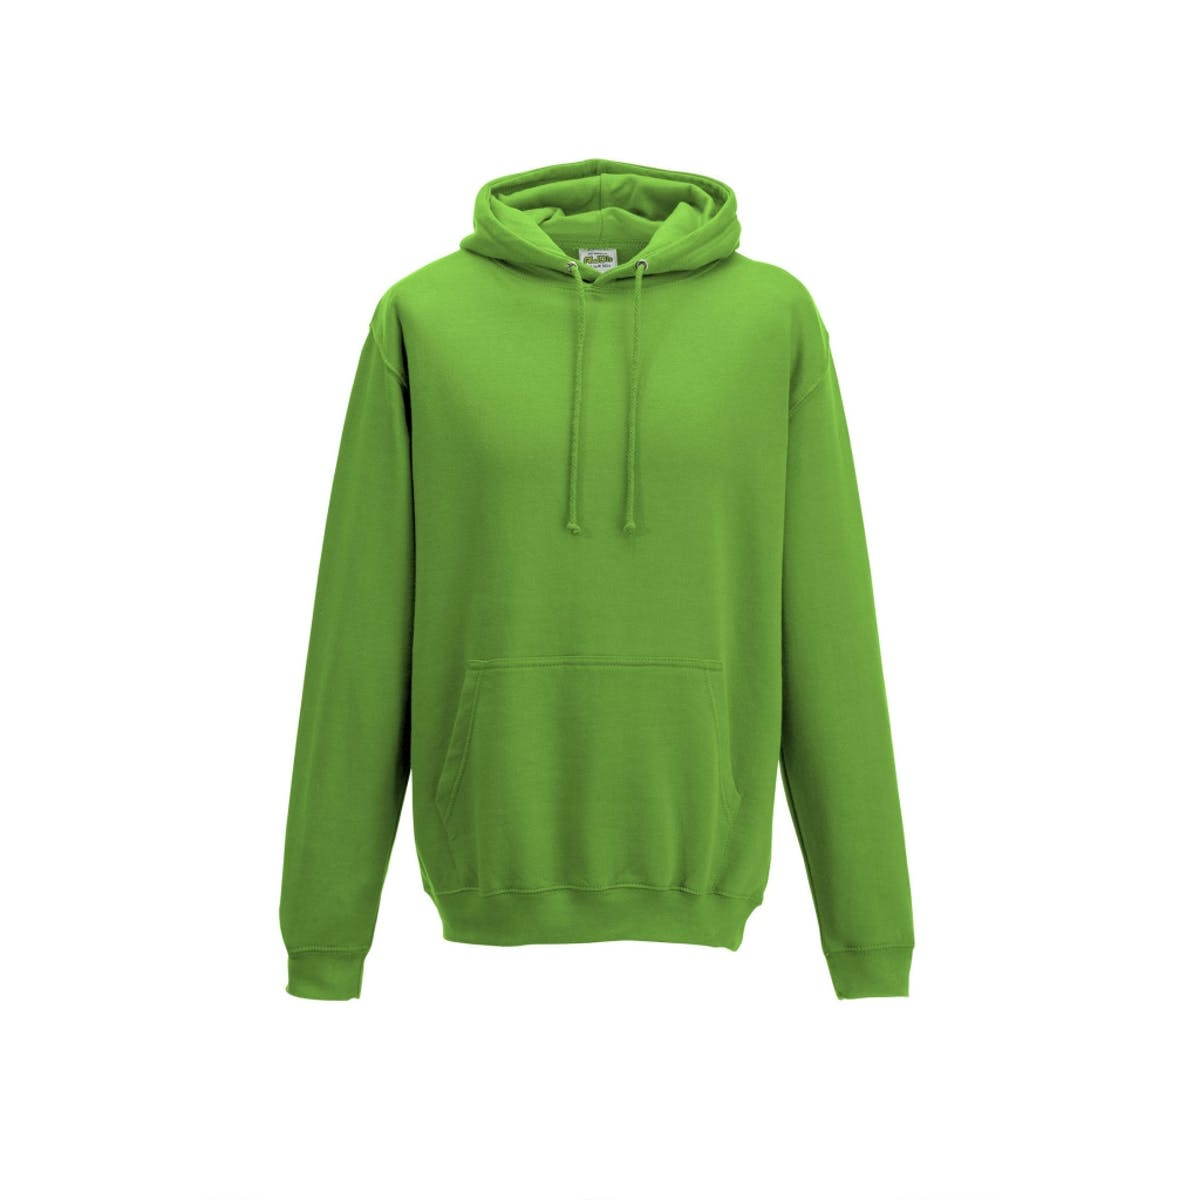 lime green college hoodies